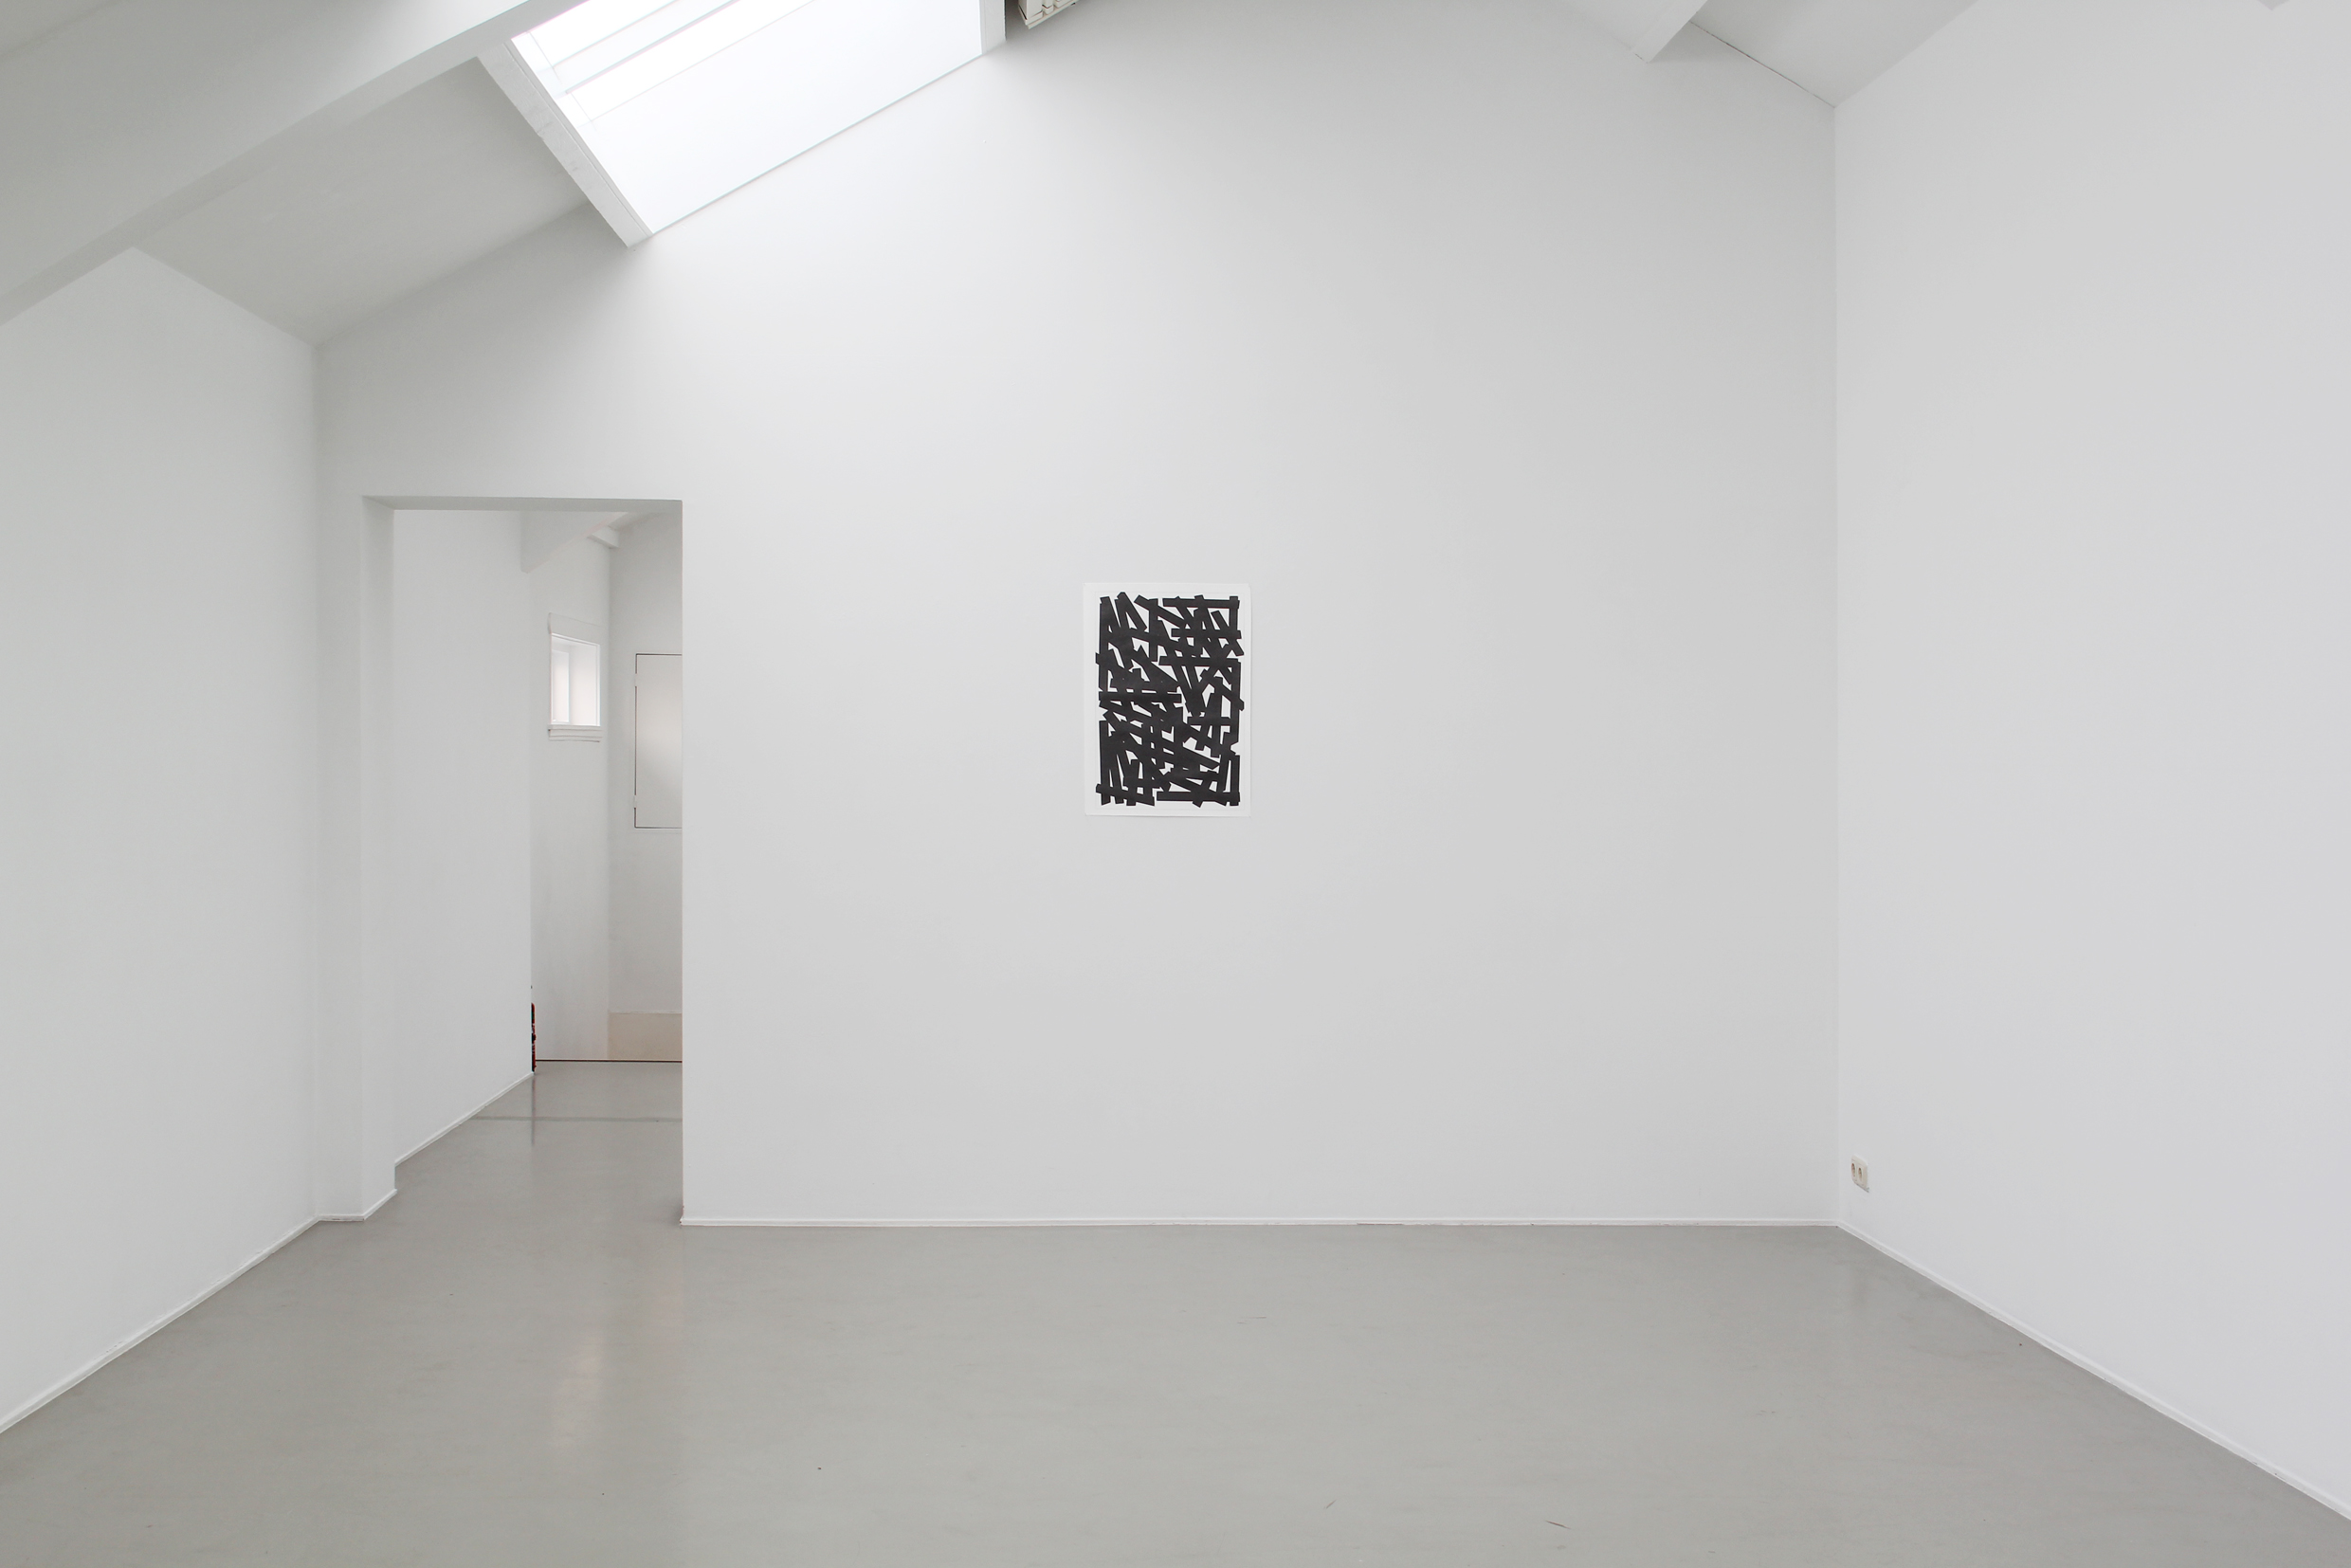 Installation view: Not Available De Vleeshal, De Kabinetten, Mi ddelburg, The Netherlands, 2014 |  | ProjecteSD